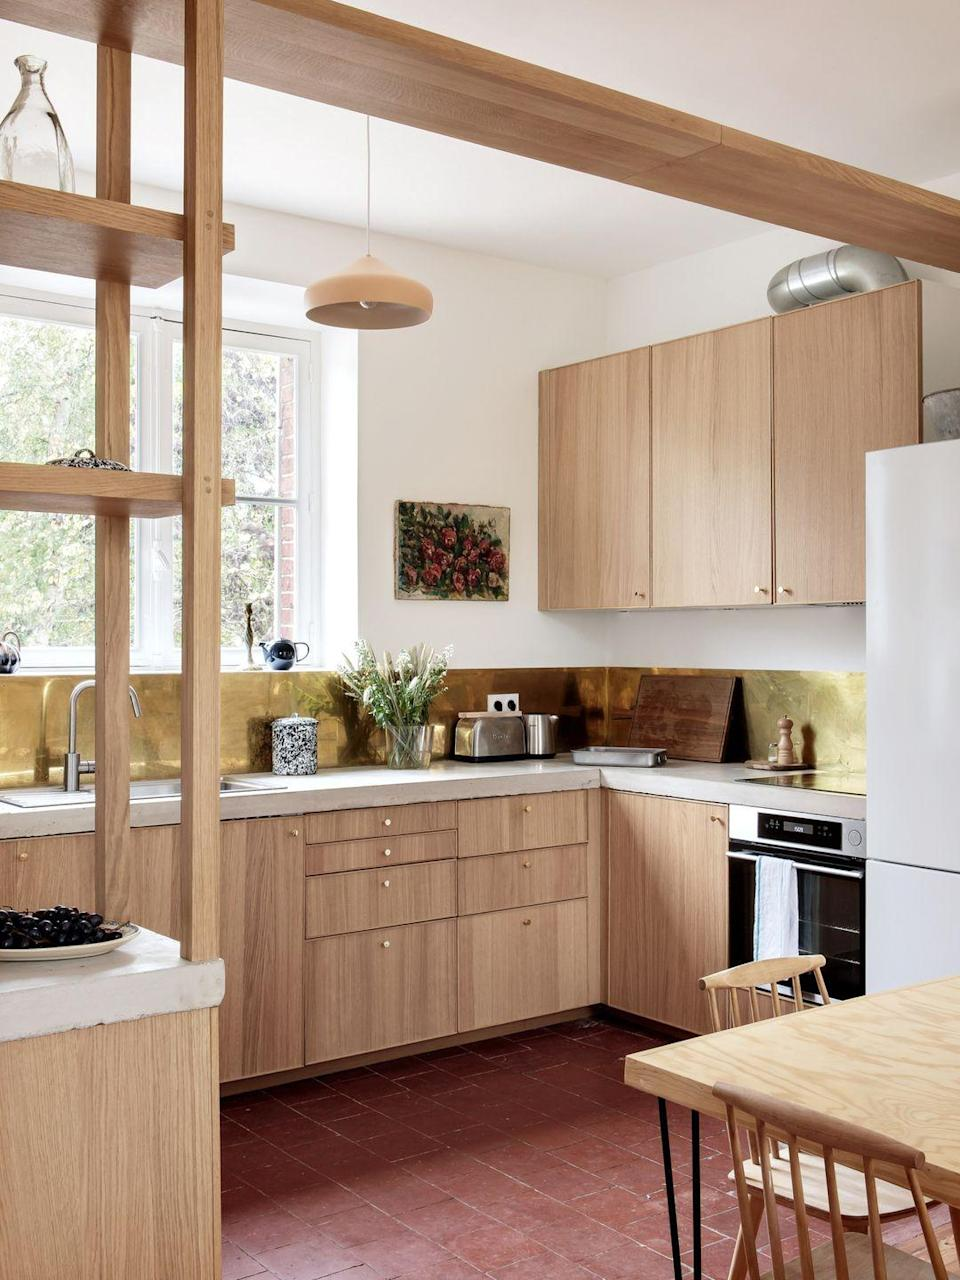 "<p>Bespoke wood fronts on the IKEA cabinets and a slim brass backsplash elevate the kitchen at <a href=""https://www.riversidehousenormandy.com/"" rel=""nofollow noopener"" target=""_blank"" data-ylk=""slk:Riverside House"" class=""link rapid-noclick-resp"">Riverside House</a> in Normandy to new heights. Thoughtful details—tiny metallic knobs, open shelves that match the cabinetry—give the whole room a custom look. </p>"